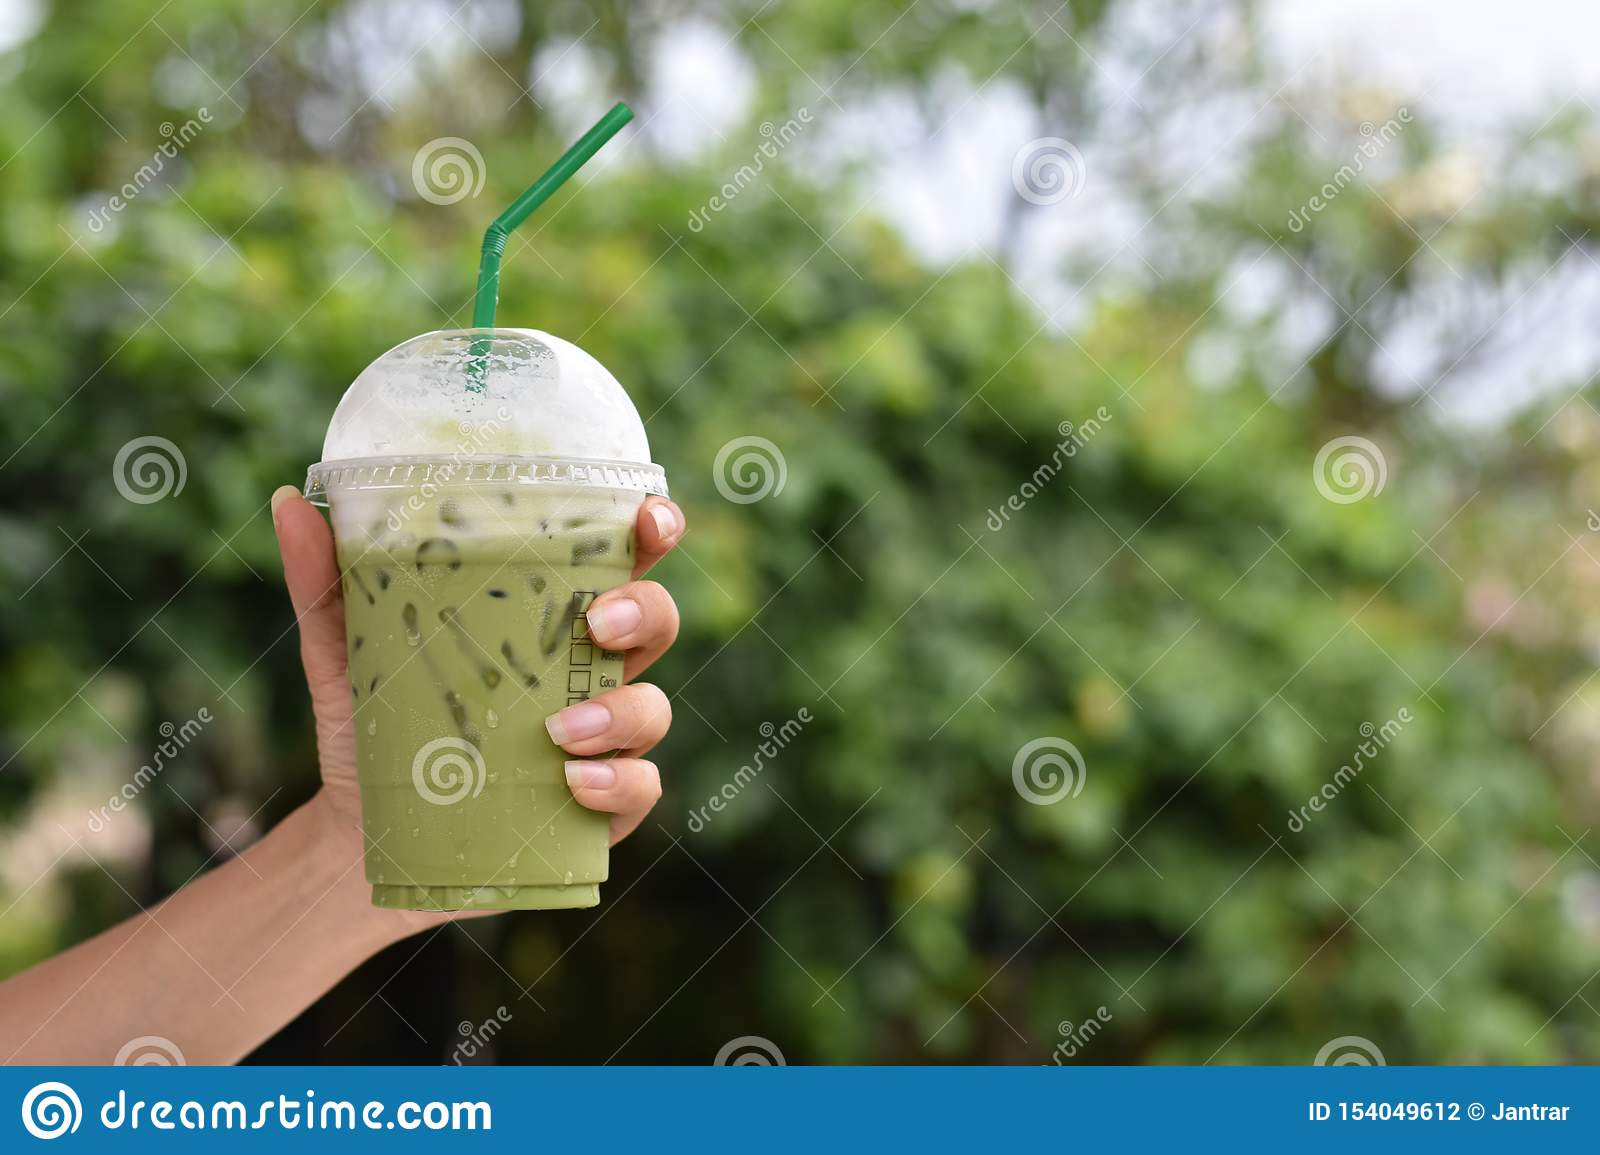 Hand holding of iced green tea in plastic glass.